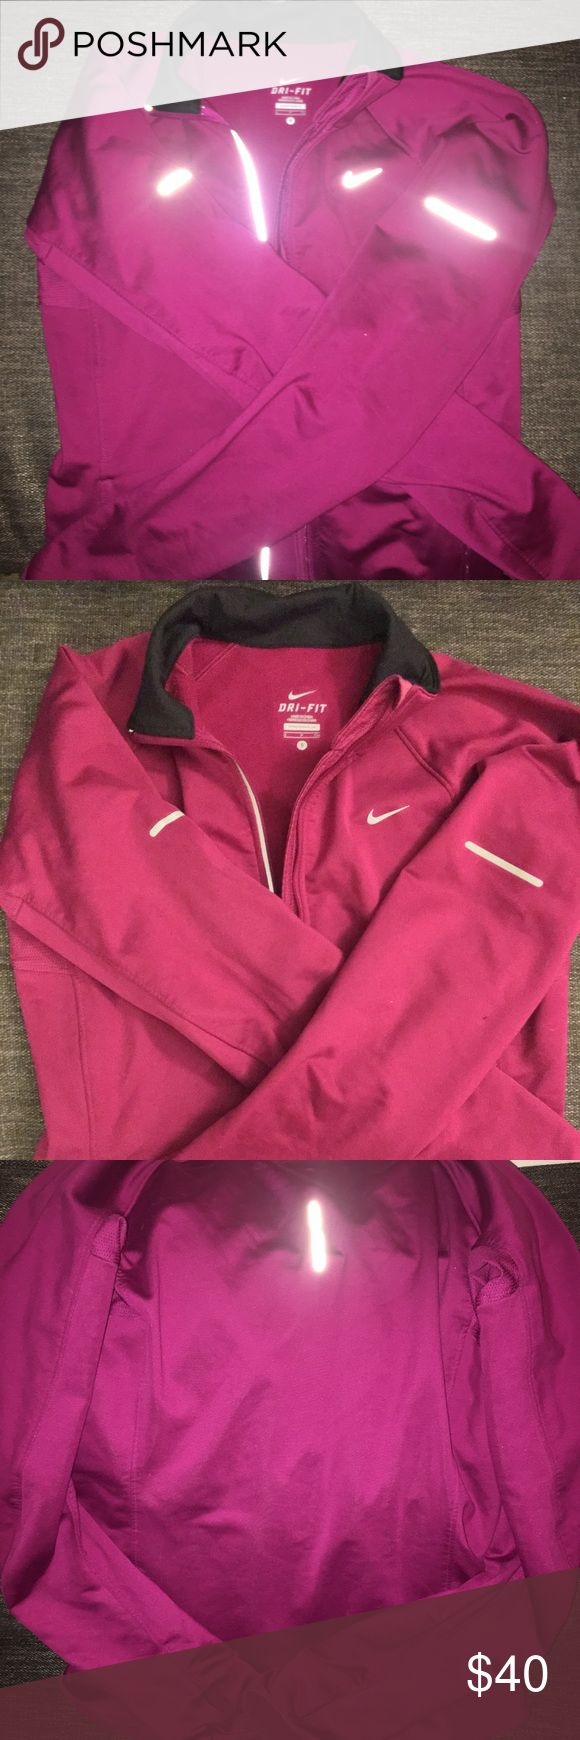 Nike running jacket Nike running jacket with reflector material and finger holes (to keep hands warm on chilly runs!). Nike Jackets & Coats